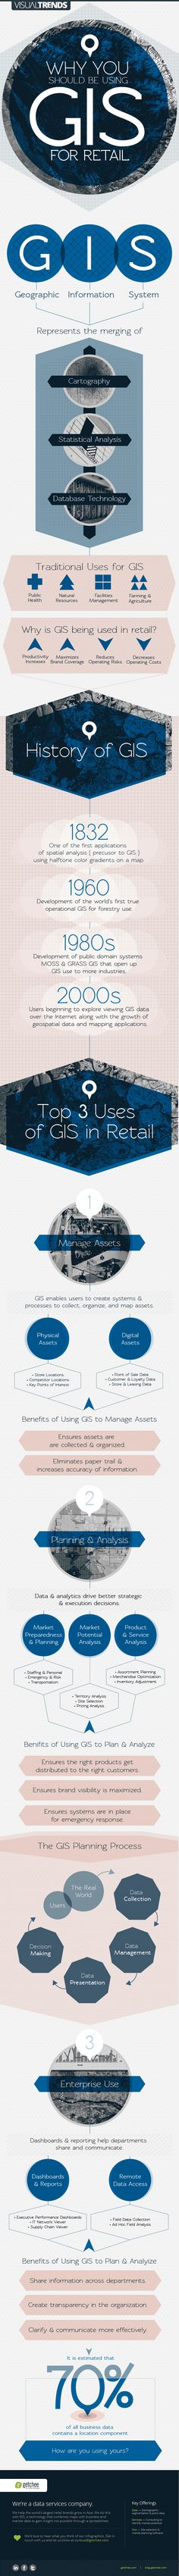 Why You Should Be Using GIS for Retail [infographic]